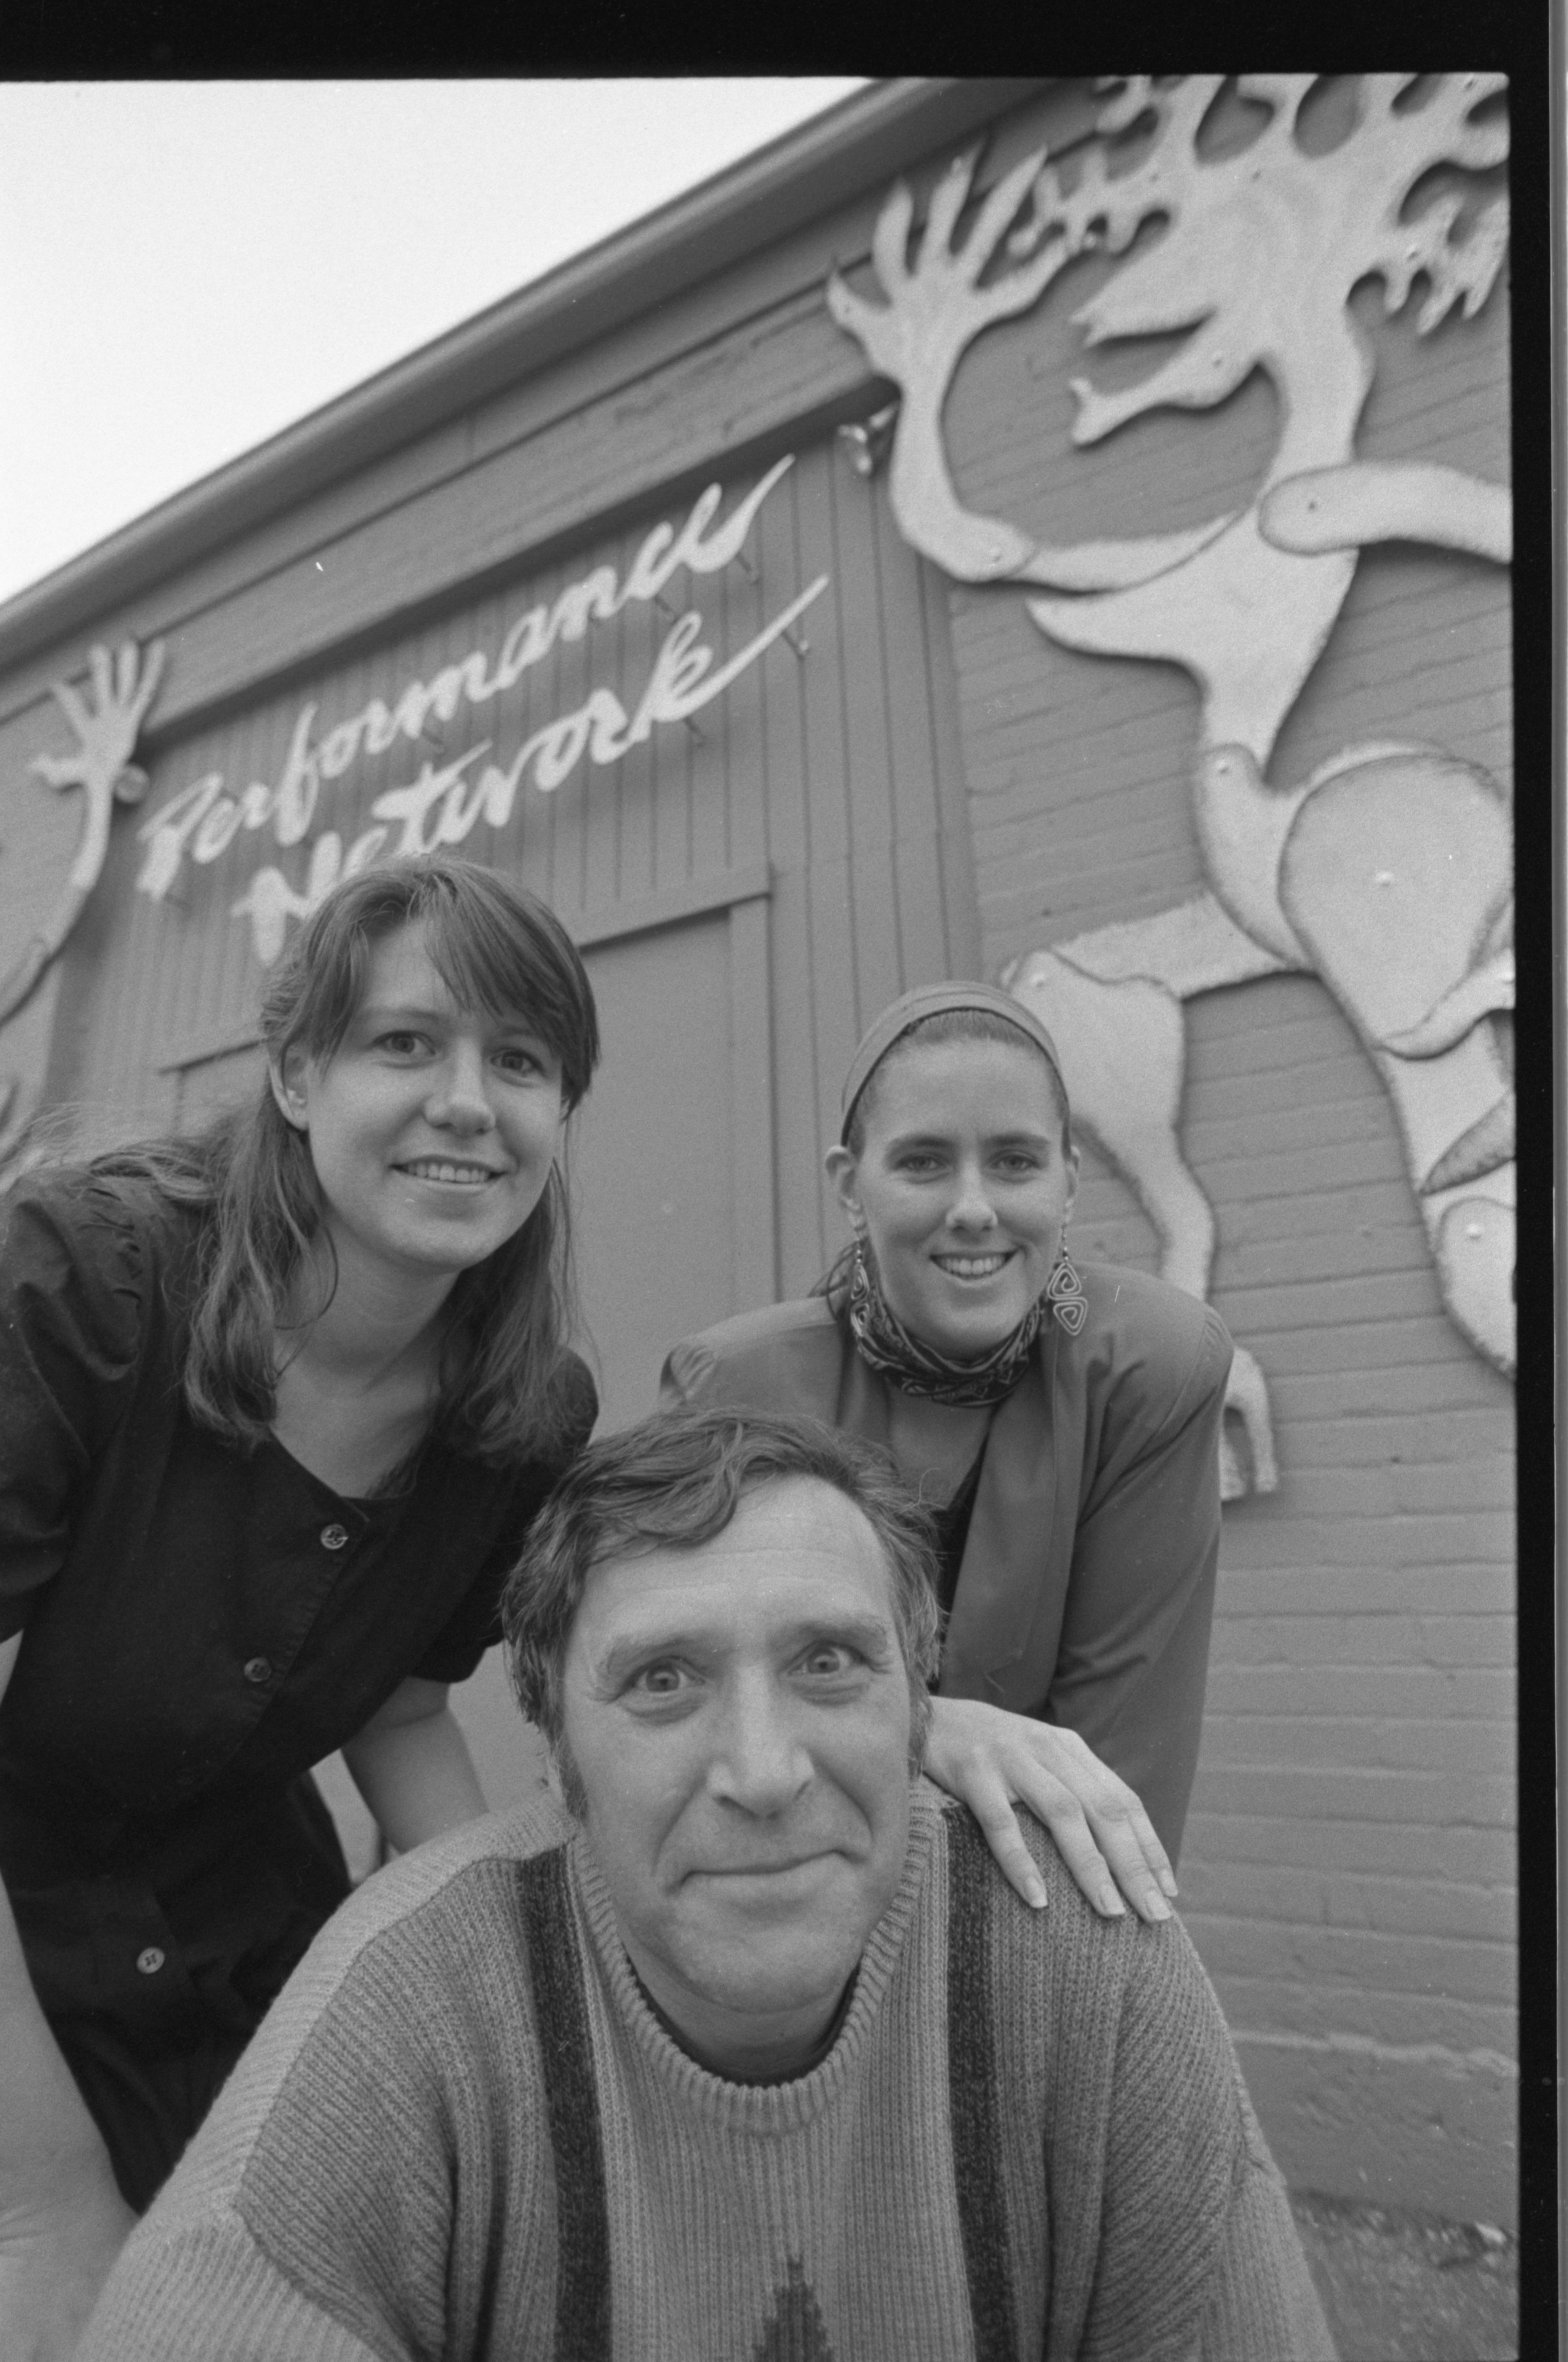 Johanna Broughton, David Bernstein, Kaysie Dannemiller smile outside of Performance Network, November 1991 image